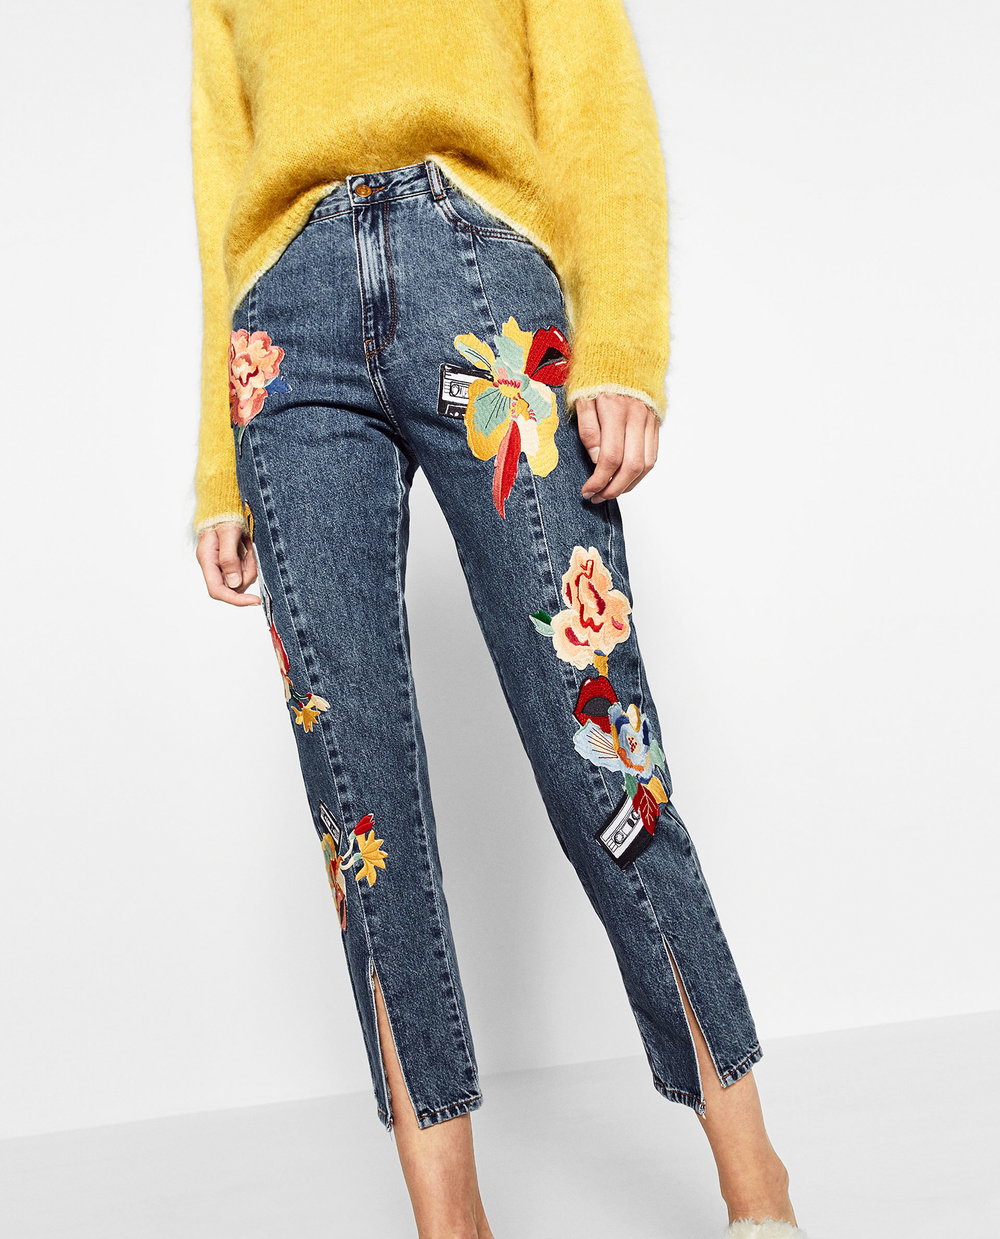 Zara Embroidered jeans.jpg